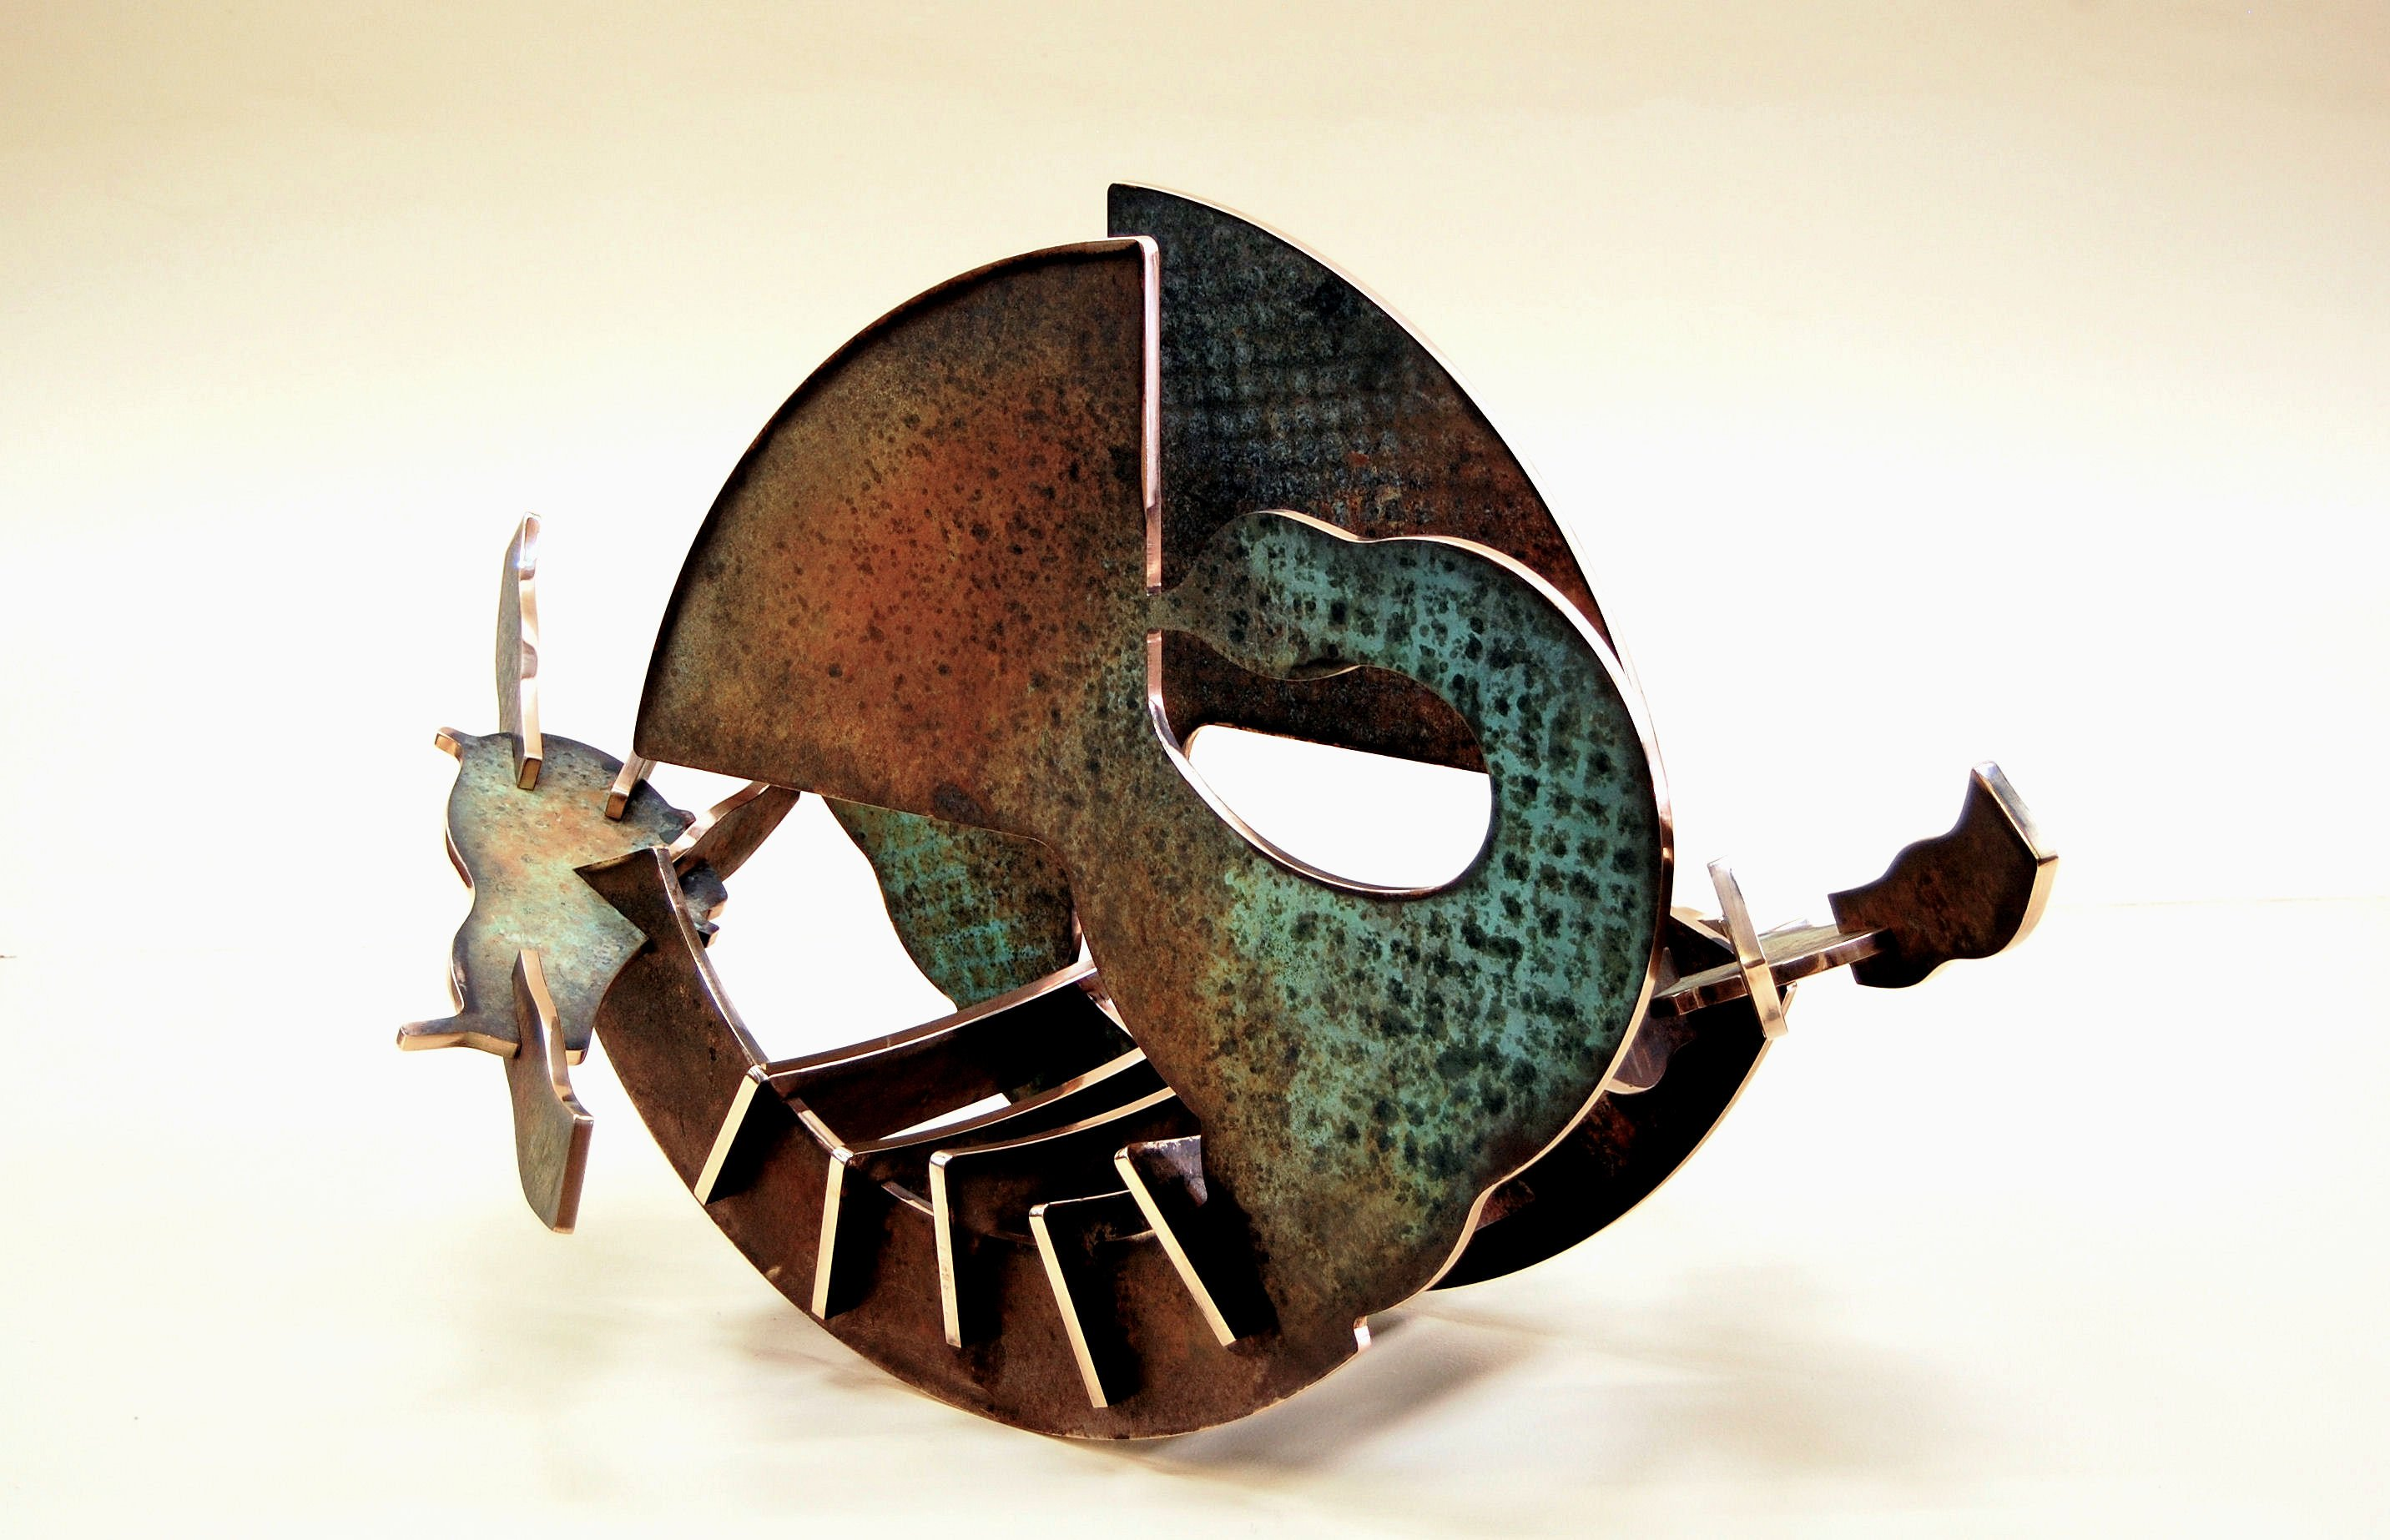 """In Retrospect - 2011, Fabricated Bronze with Hot Patina, 23"""" x 43"""" x 26"""""""